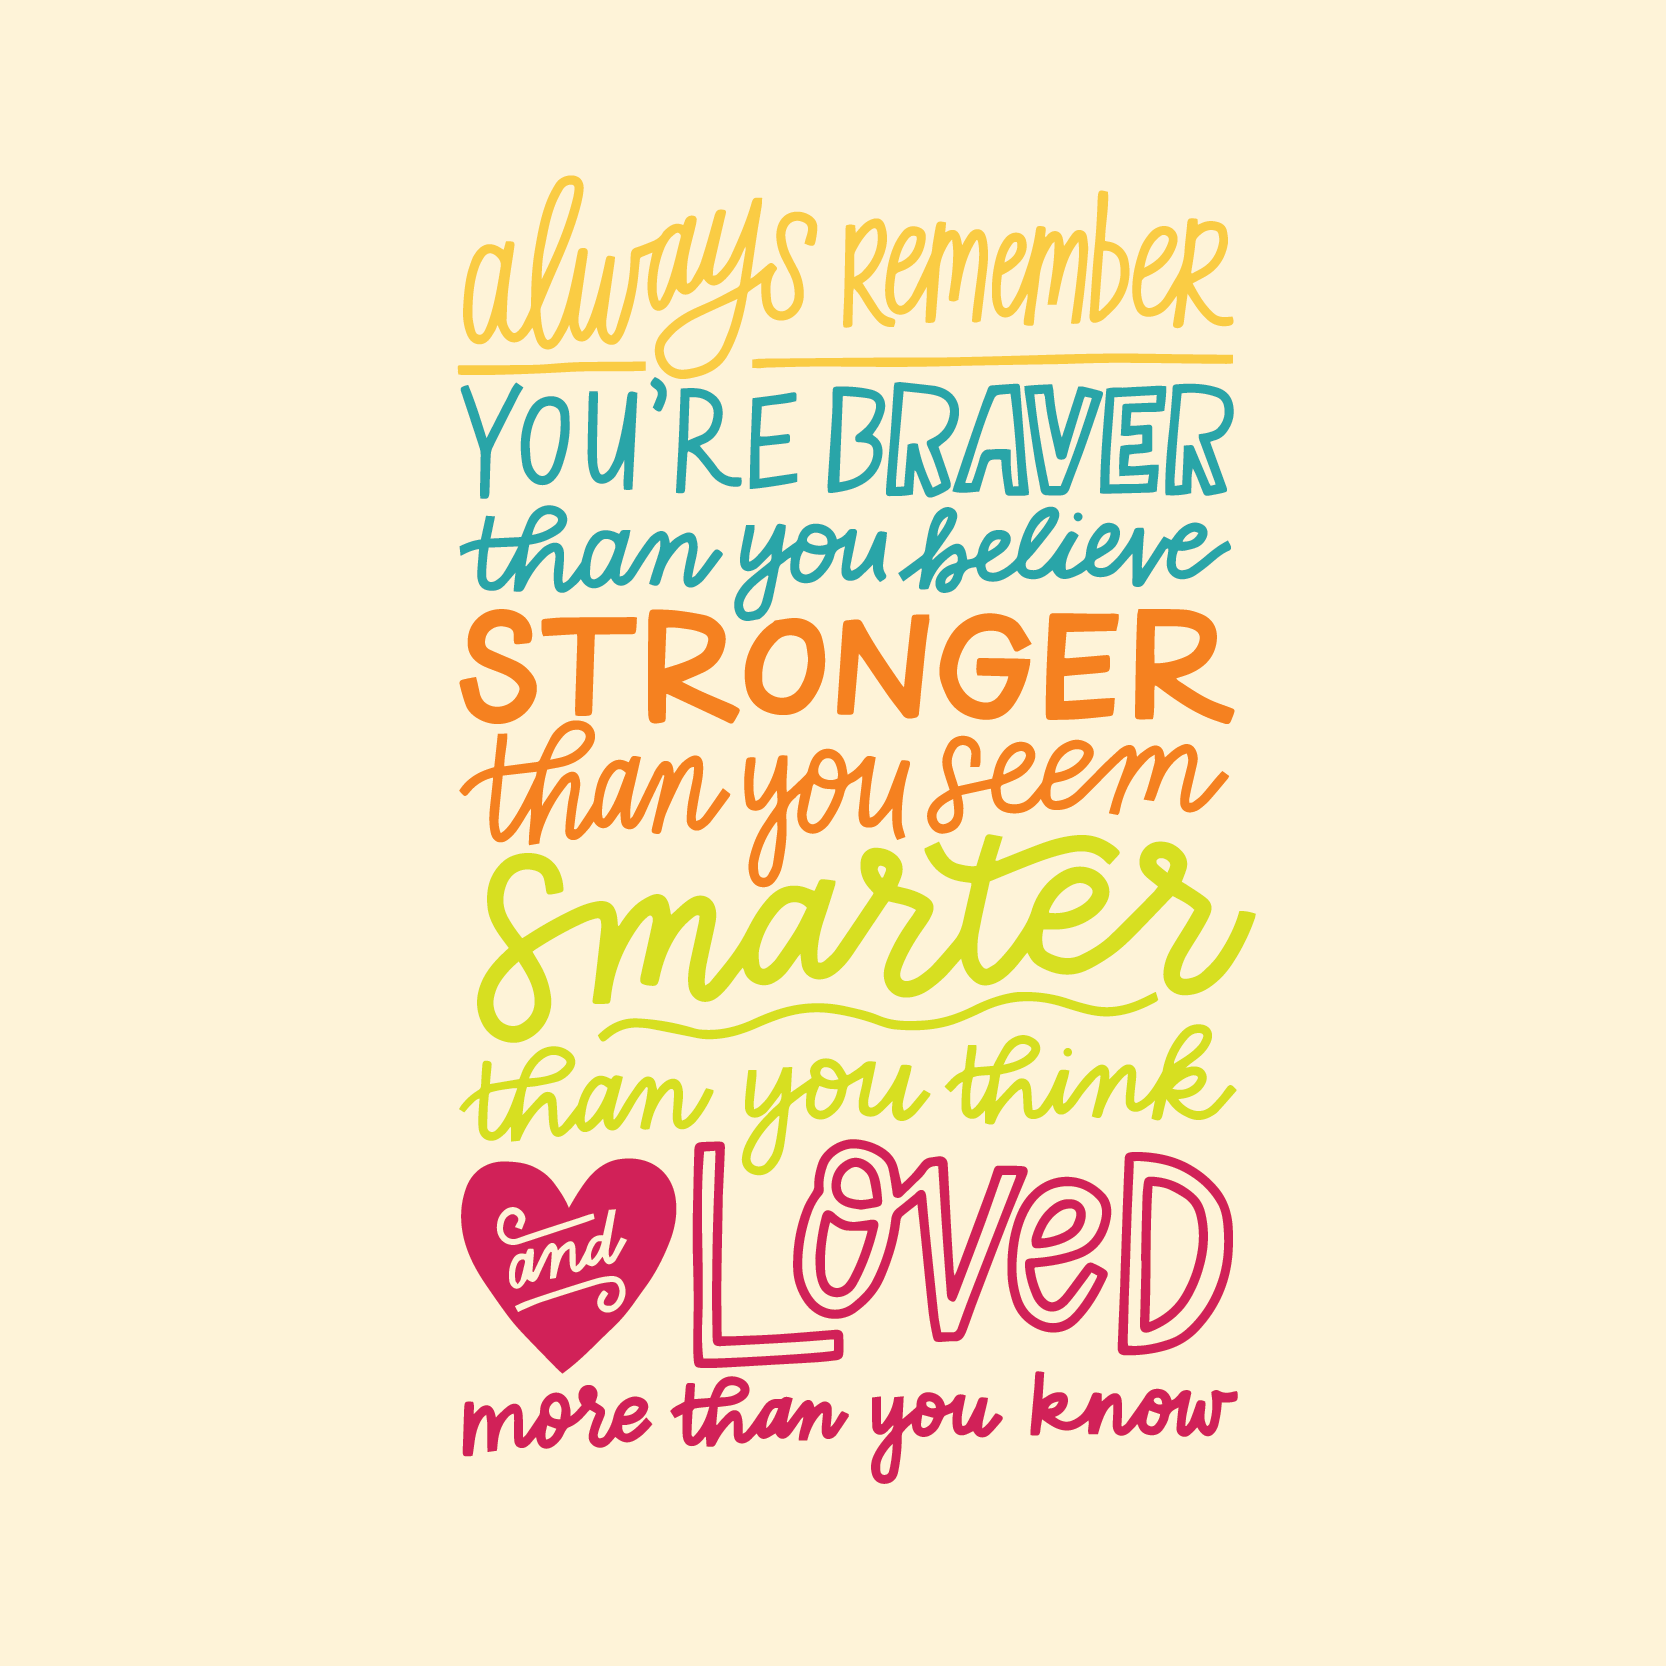 Custom Lettered Quote for Hey Lola